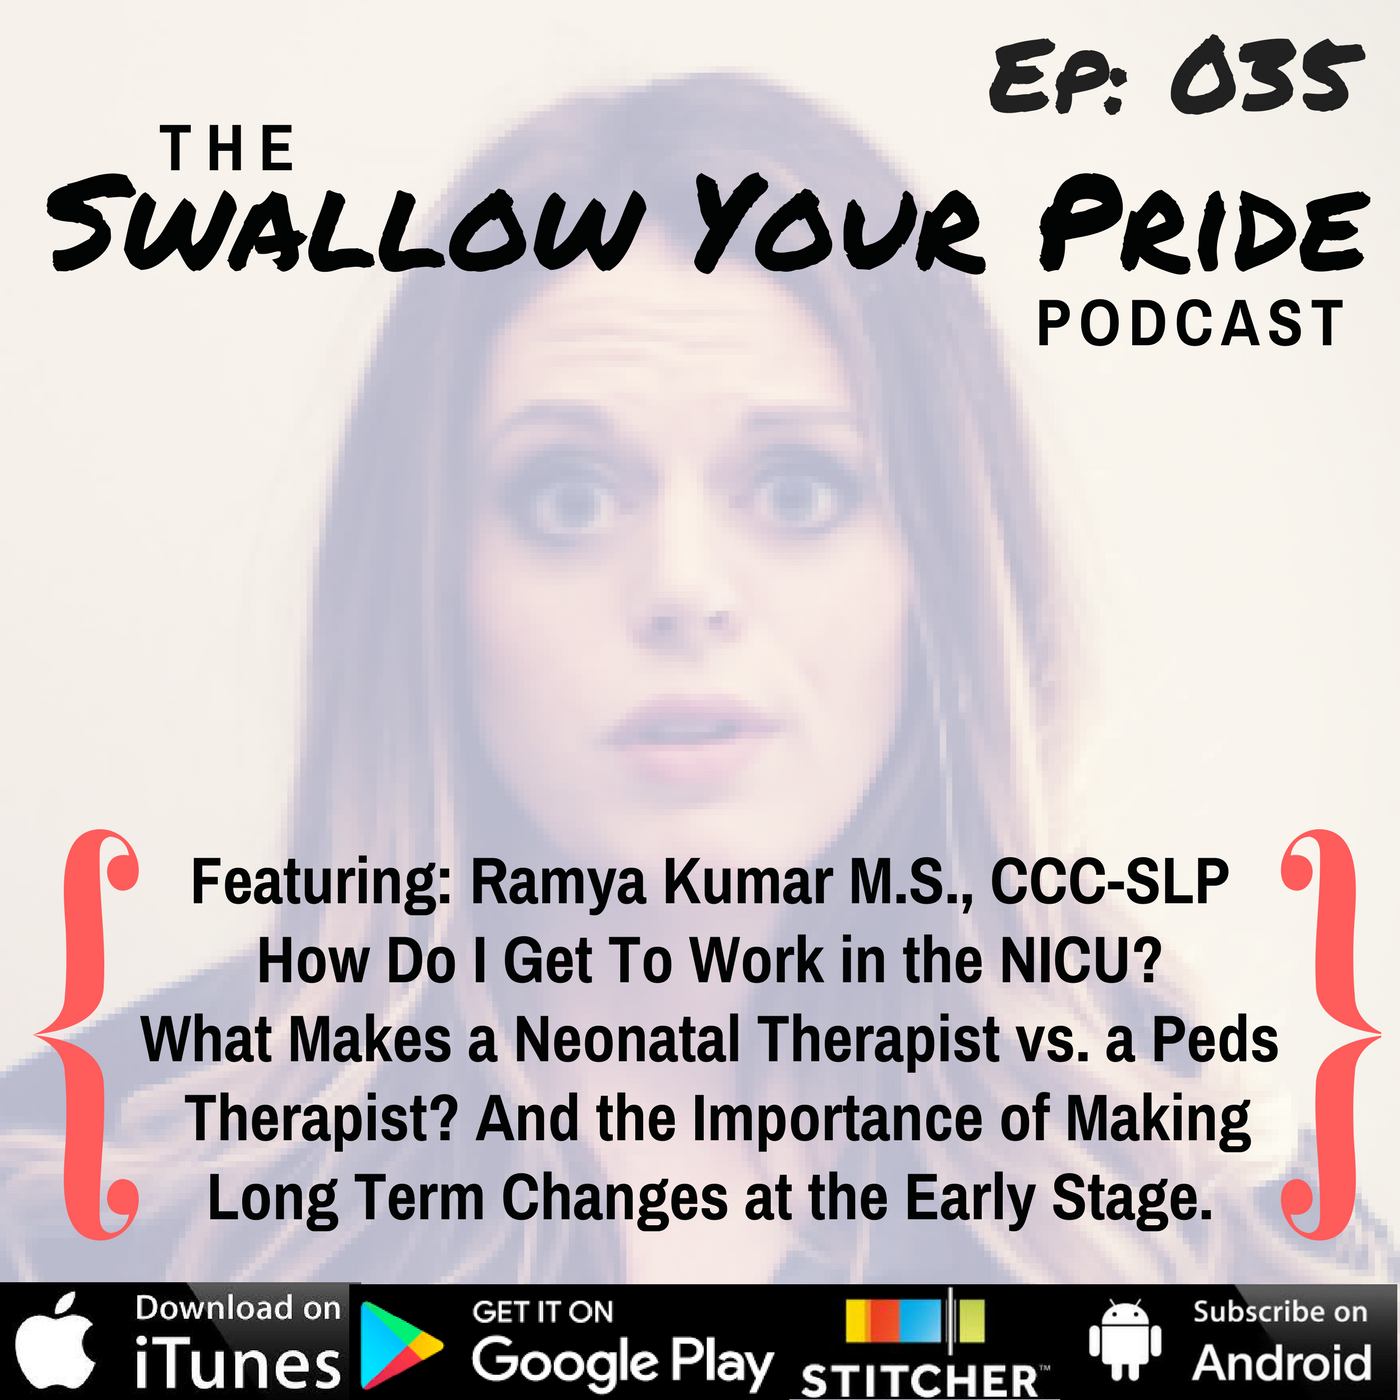 035 – Ramya Kumar M.S., CCC-SLP – How Do I Get To Work in the NICU?  What Makes a Neonatal Therapist vs. a Peds Therapist? And the Importance of Making Long Term Changes at the Early Stage.